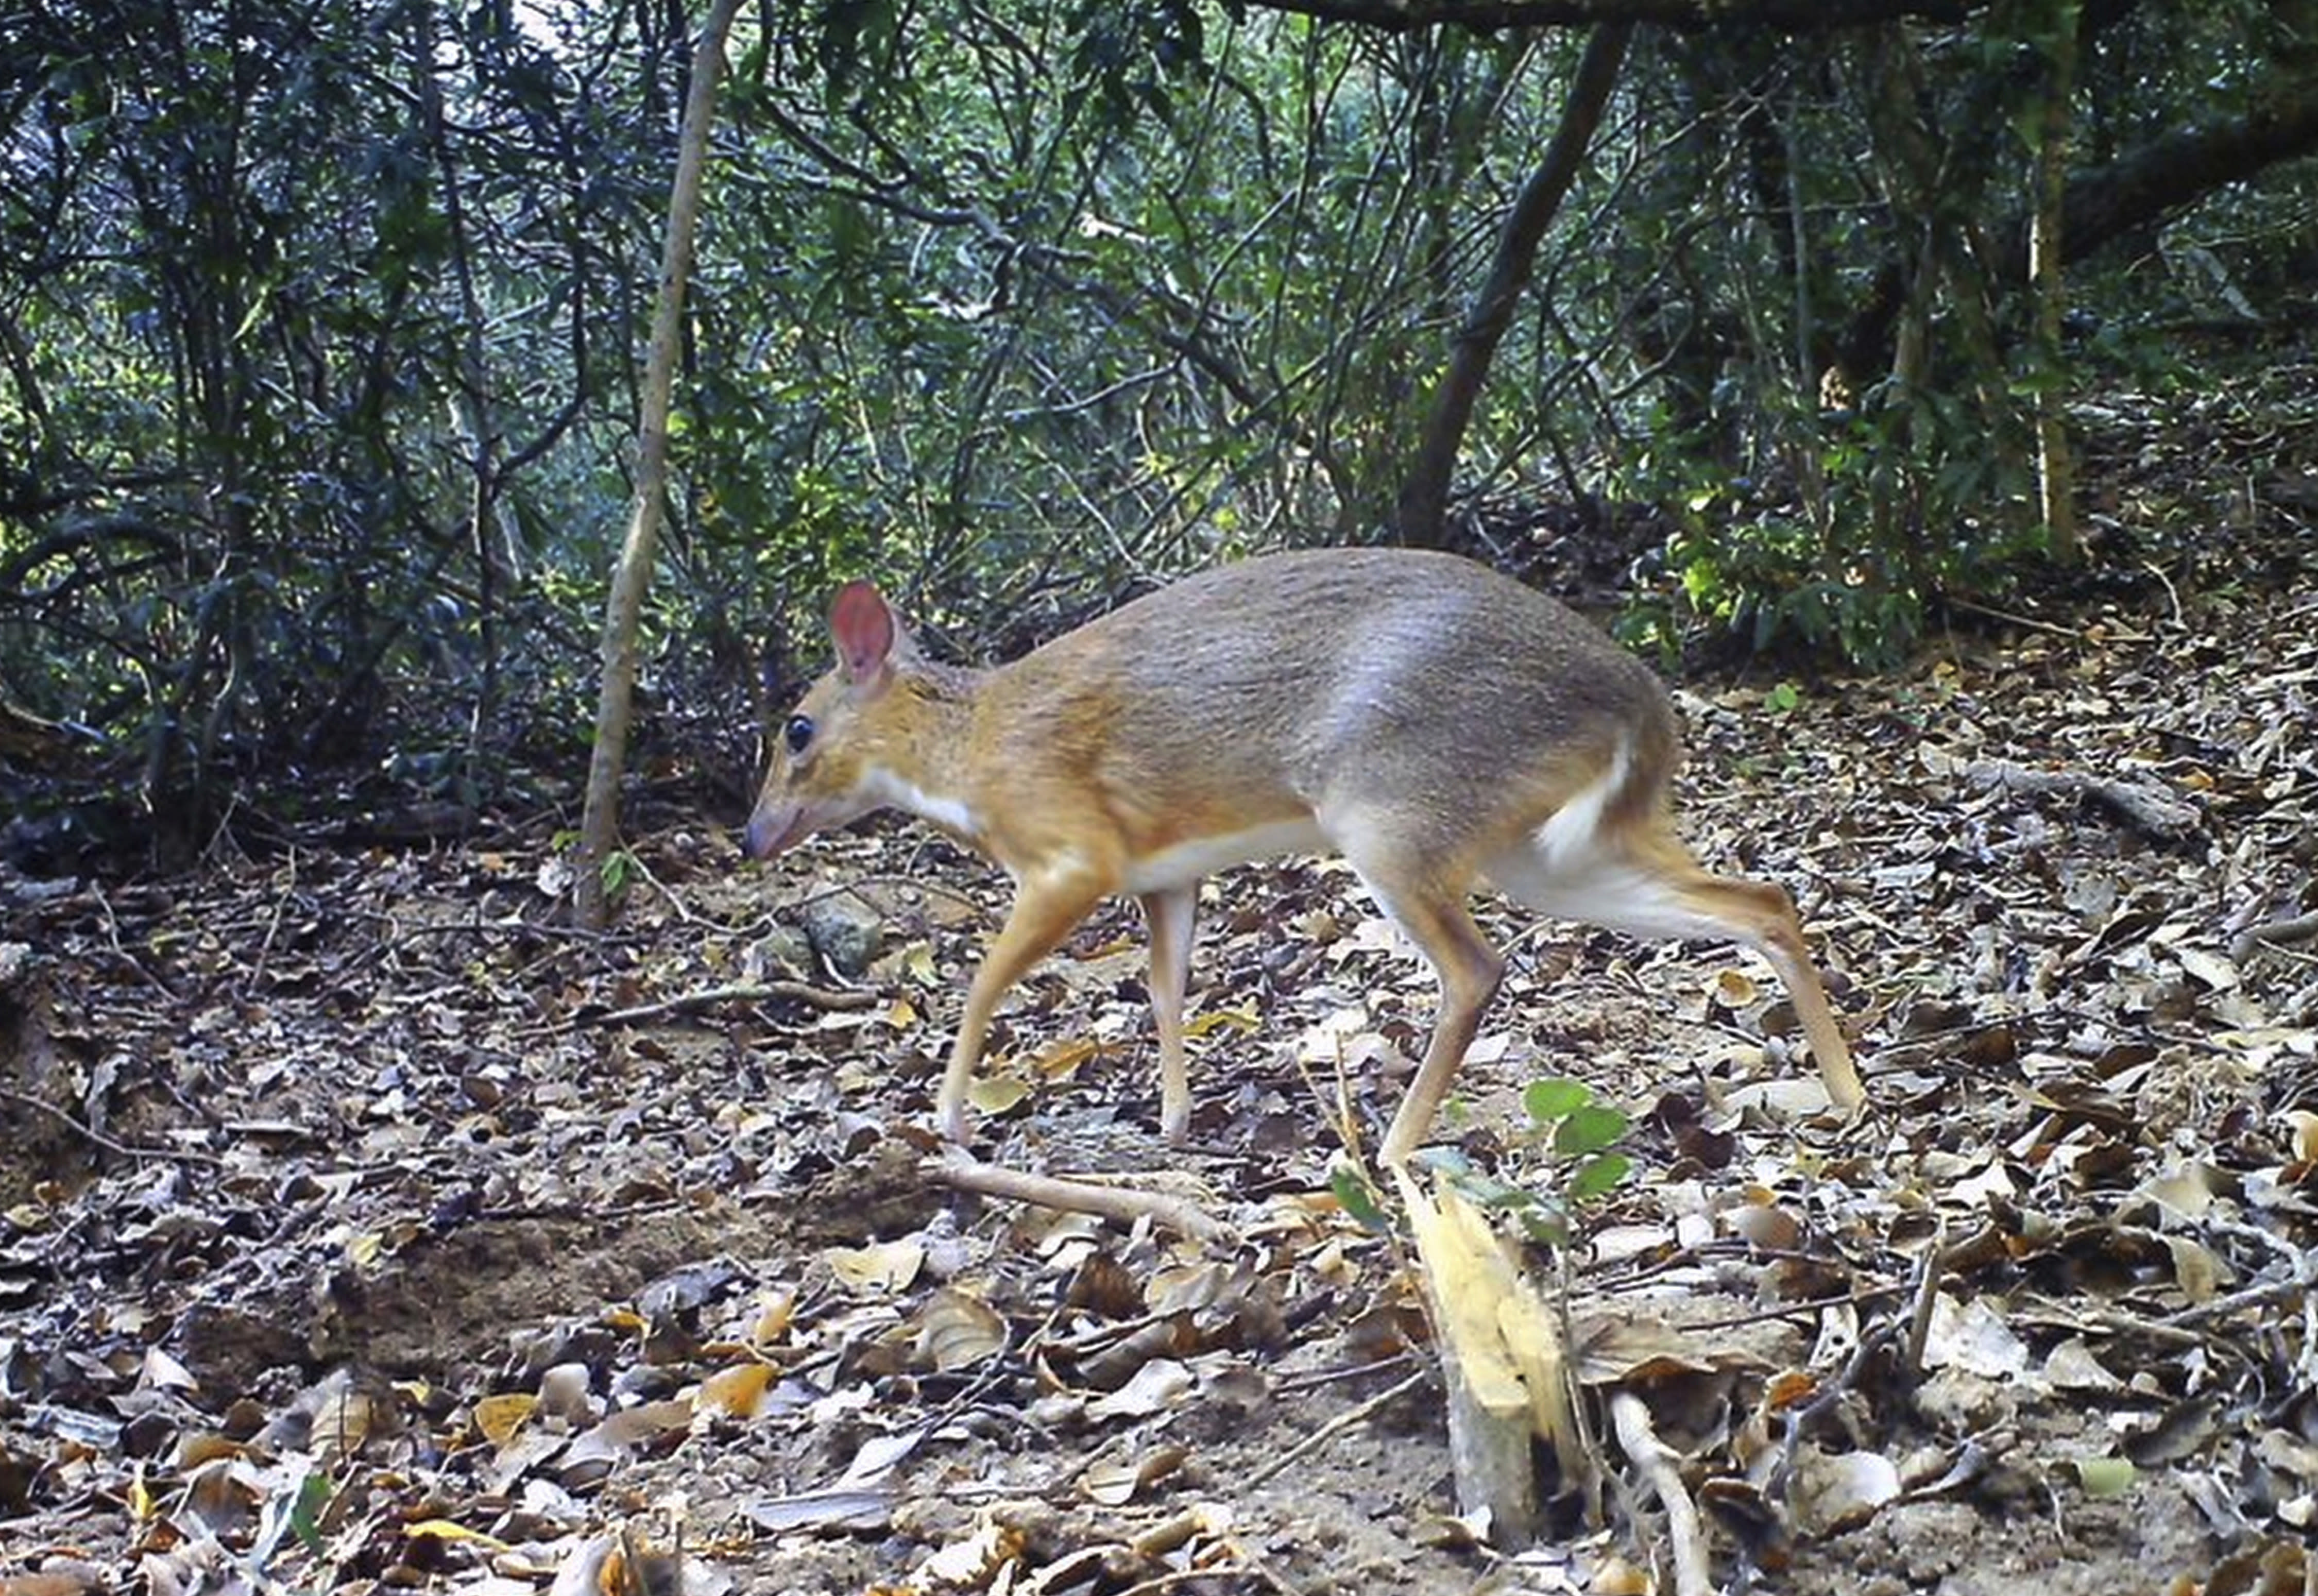 Rare Mouse Deer spotted in Vietnam after vanishing for near 30 years